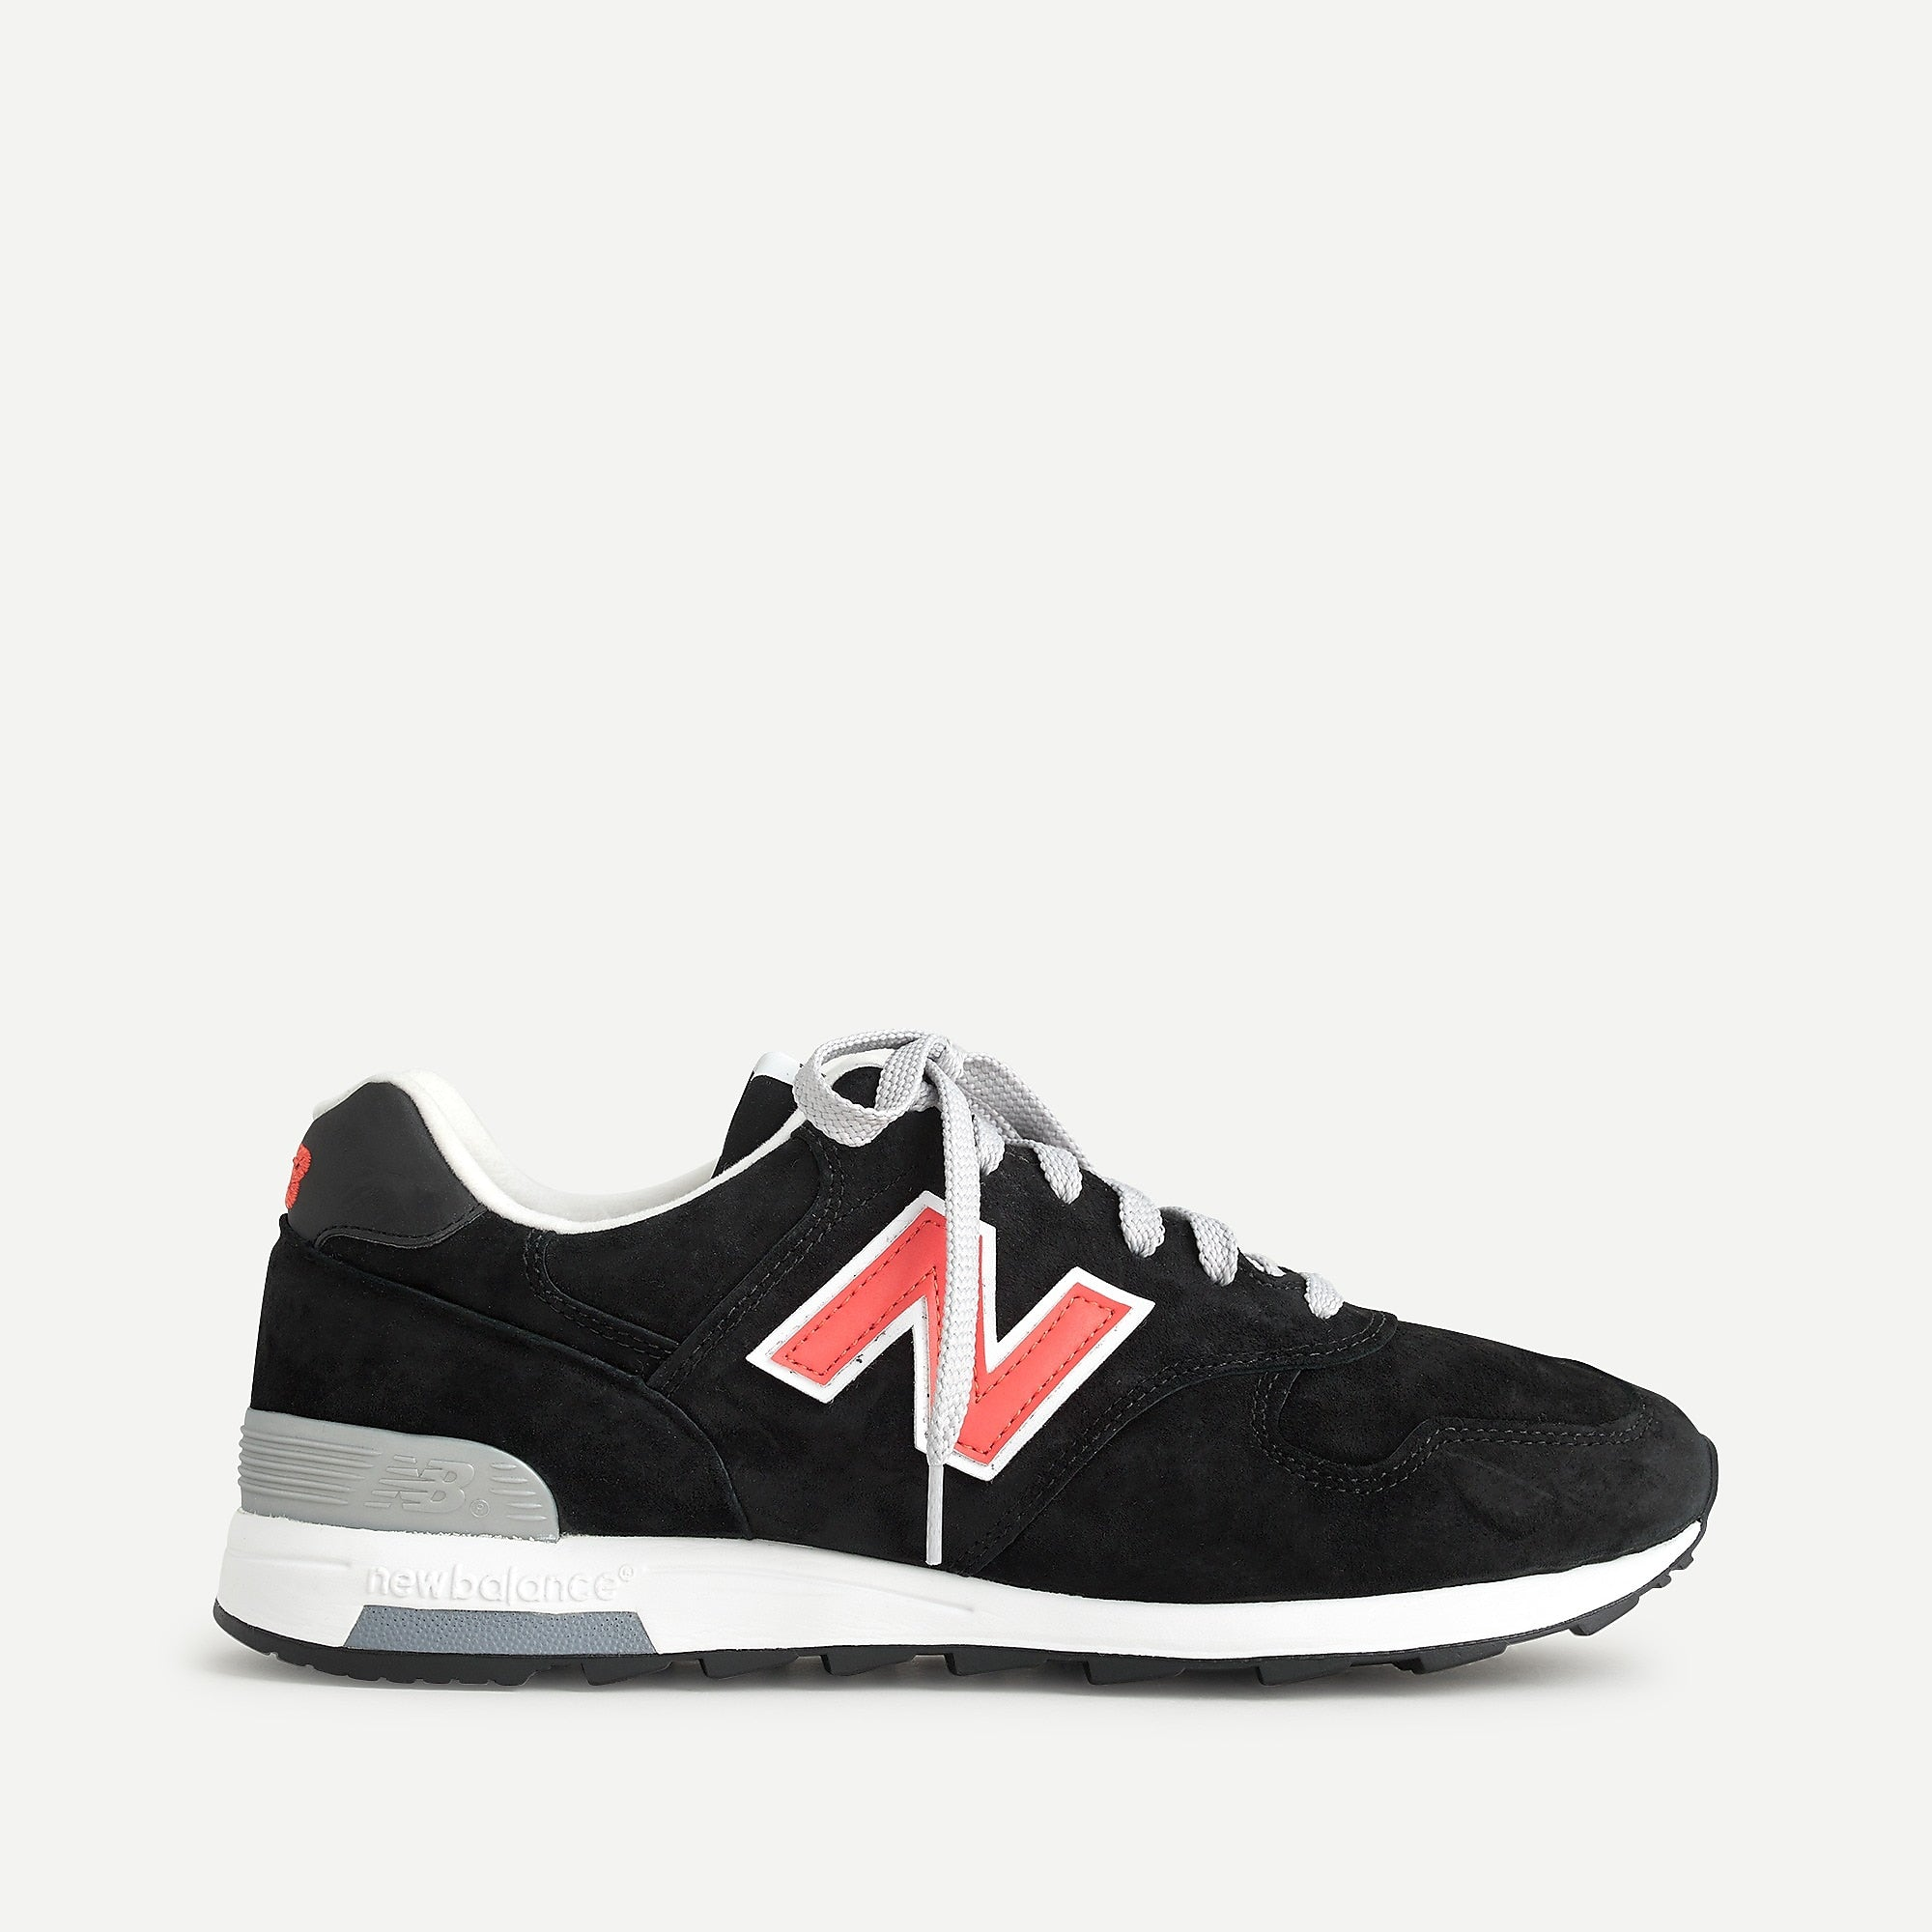 J.Crew x New Balance M1400BKK Made in USA-Preorder Item-Navy Selected Shop